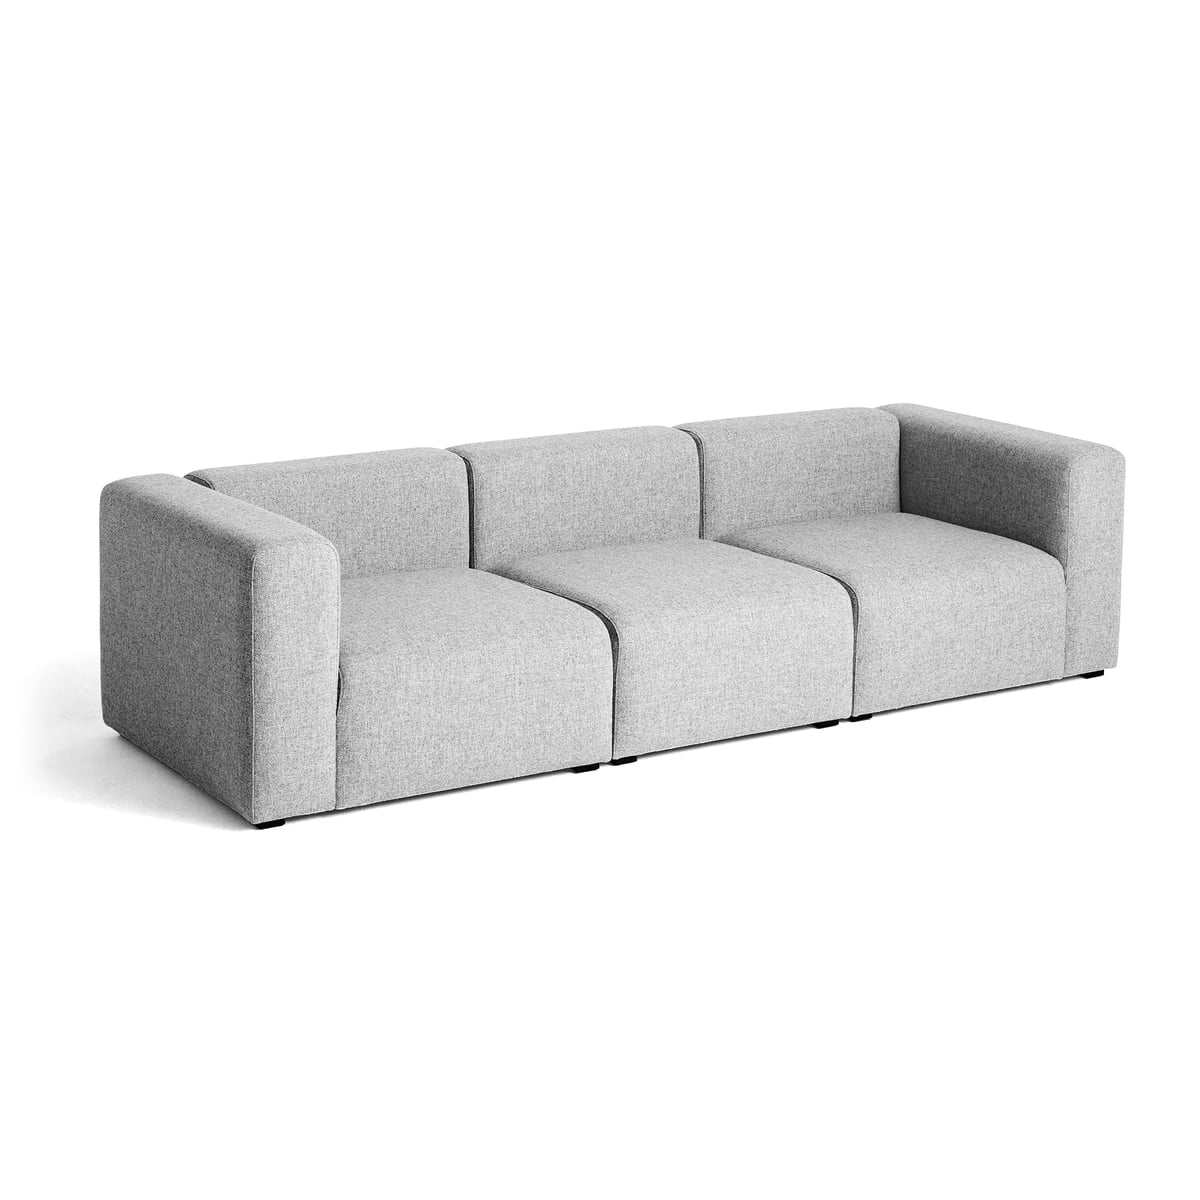 Mags sofa 3 seater hay shop for Sofa 3 sitzer